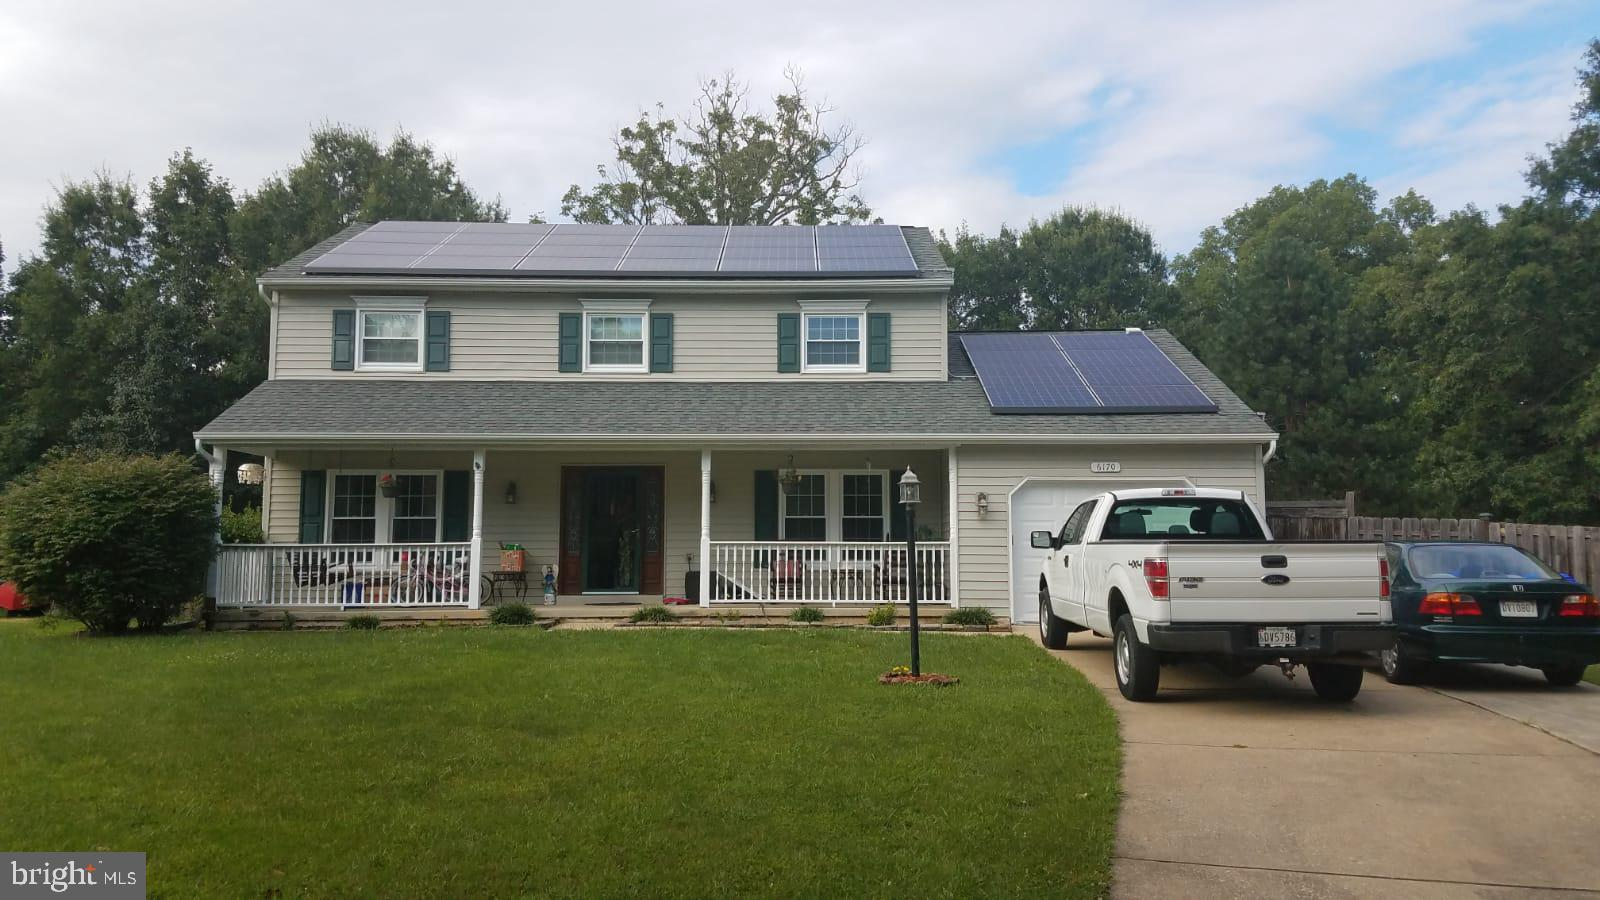 Cozy two-level Colonial on Cul de Sac in ST CHARLES-Hampshire Neighborhood. The main level of this home offers a  spacious family room with a wood-burning fireplace, Kitchen, and Dining area with Hardwood Flooring, Living Room, and Powder Room. The upper level of this home offers a Master Bedroom with Master Bath, a walk-in closet and W/W carpeting, 2 additional bedroom spaces, and a full hall bath. Enjoy sitting outside on your deck in the privacy of your fenced-in rear yard. SOLAR PANELS-LEASED(TESLA)